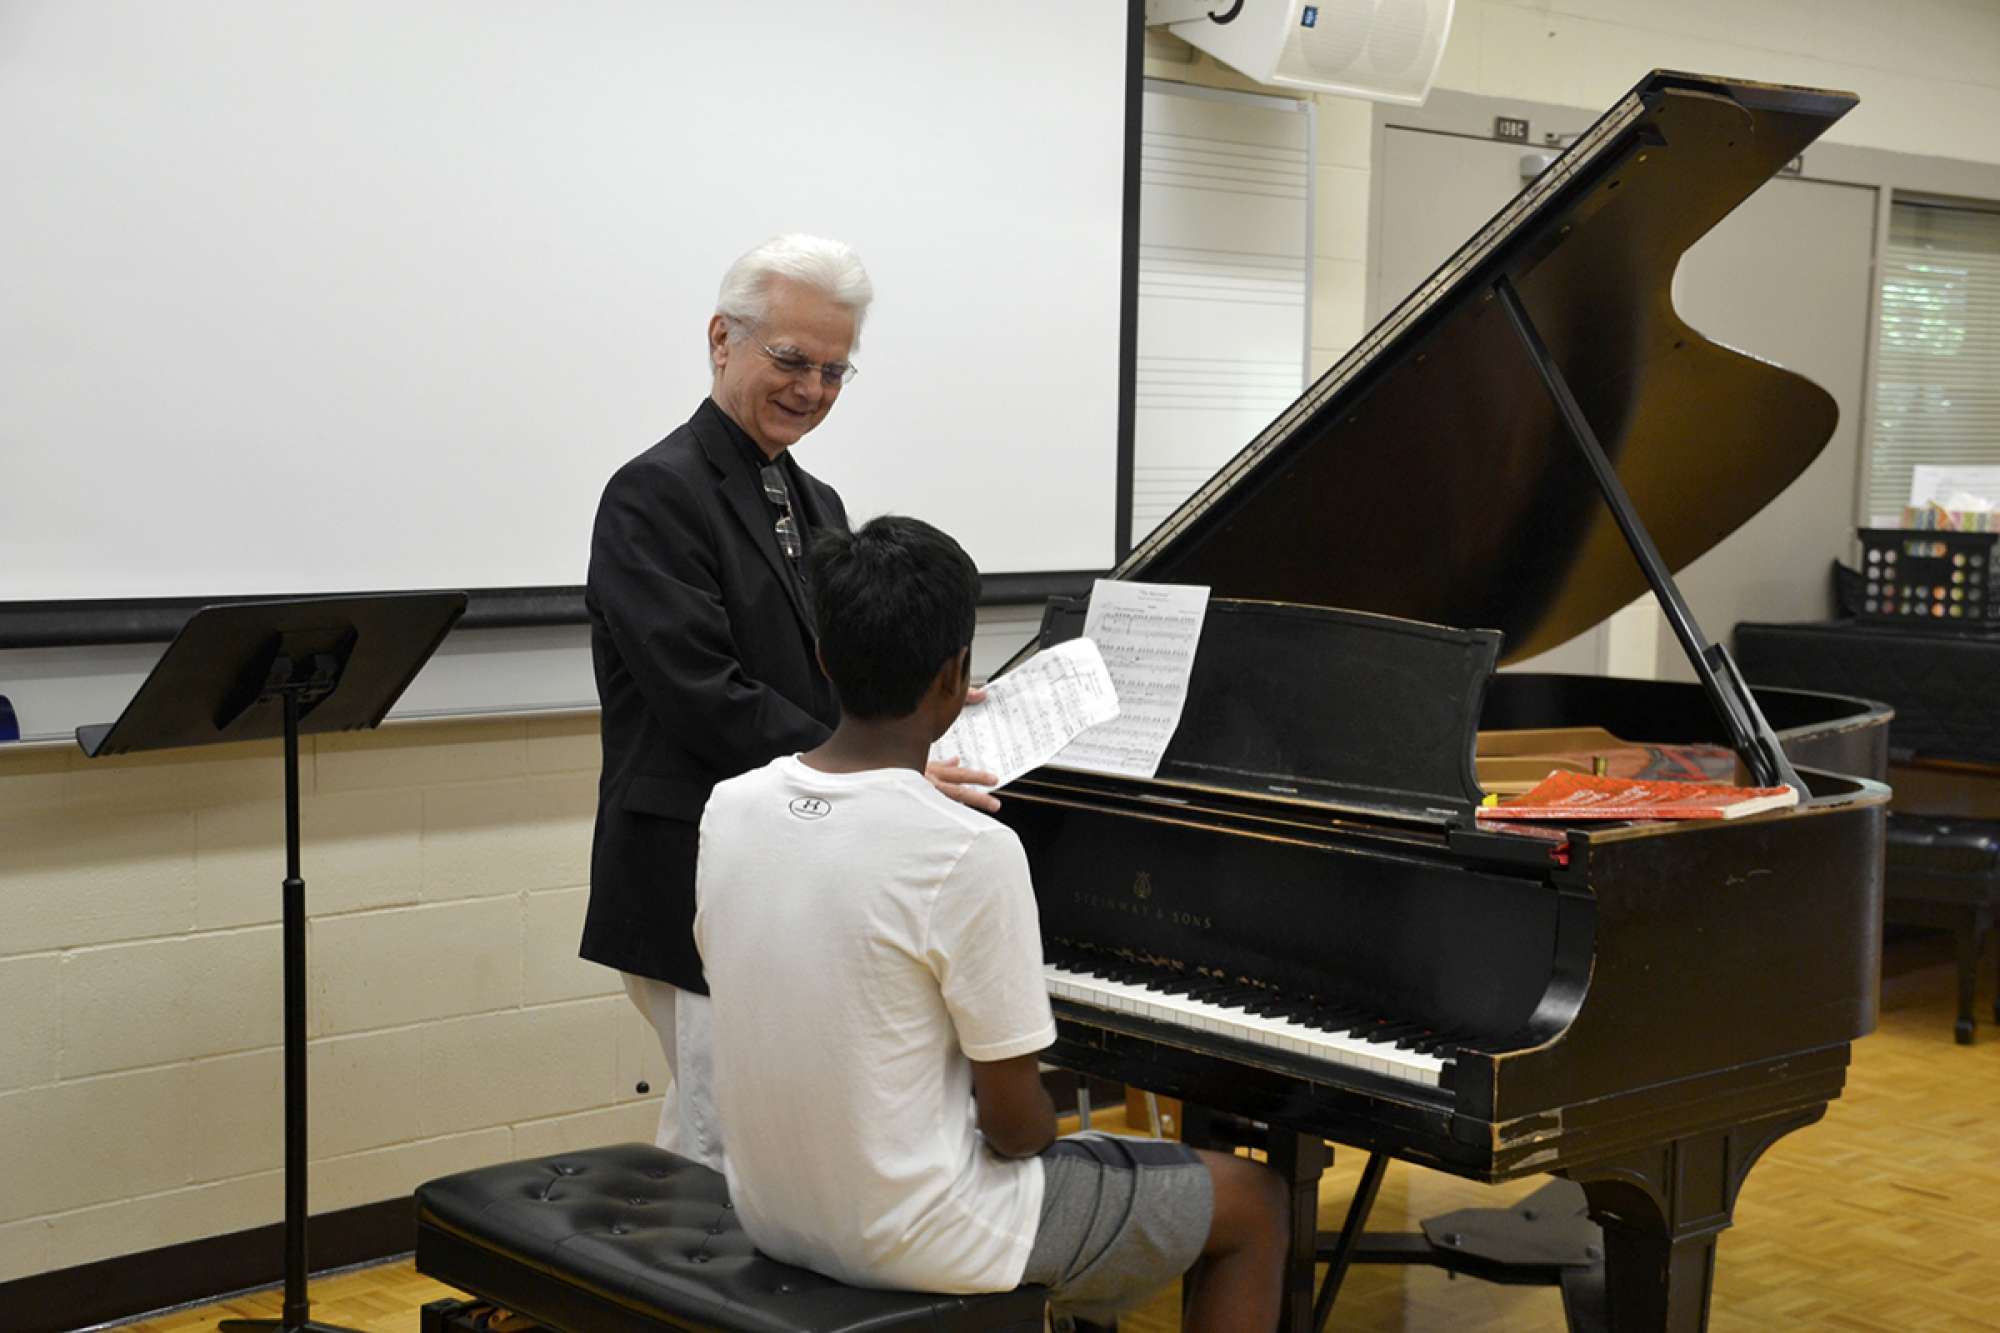 Piano instructor and student at a piano